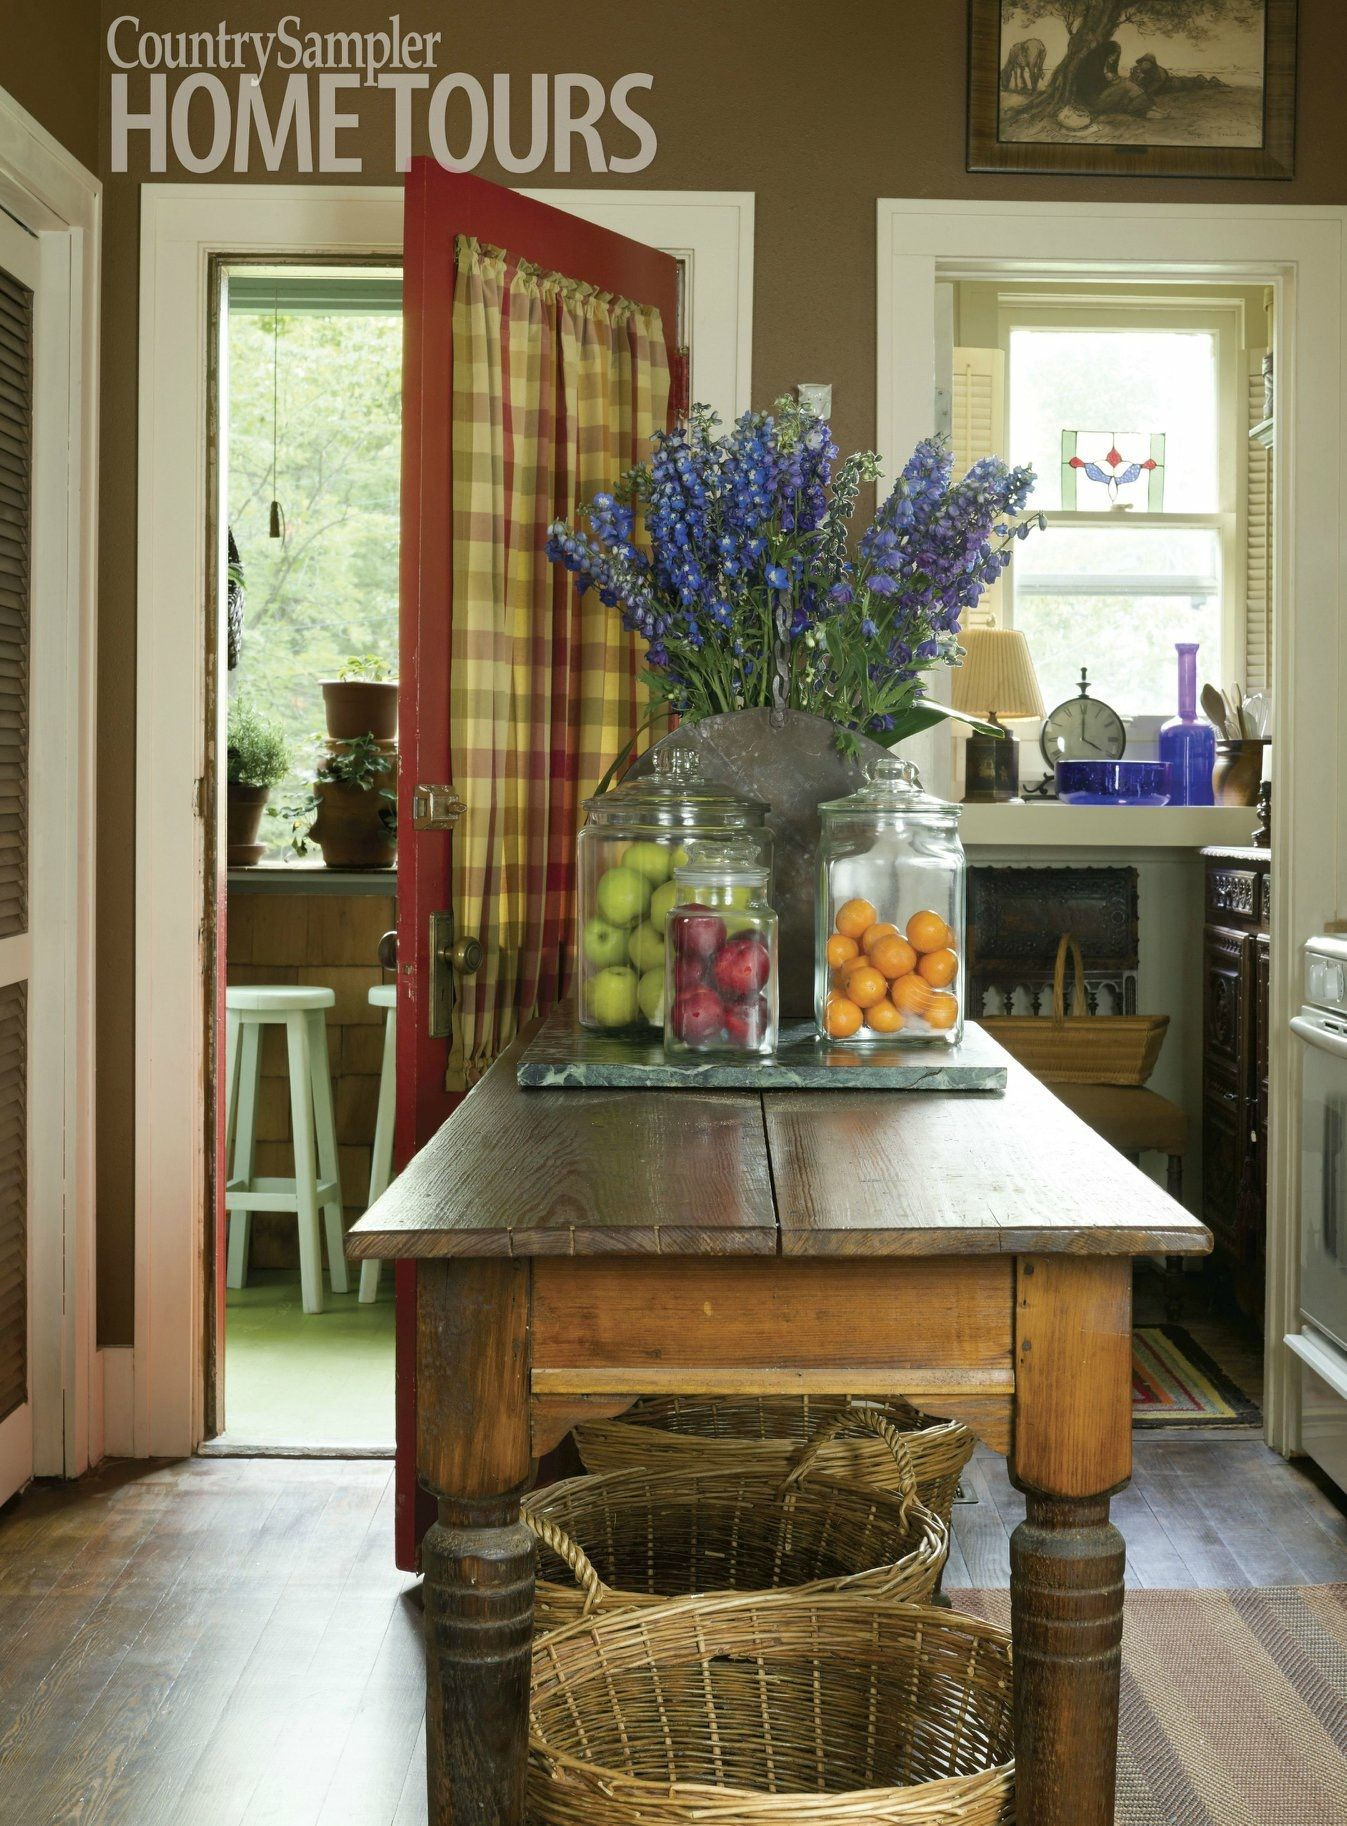 Pin by Sherie Smith on Country Sampler Magazine Diy